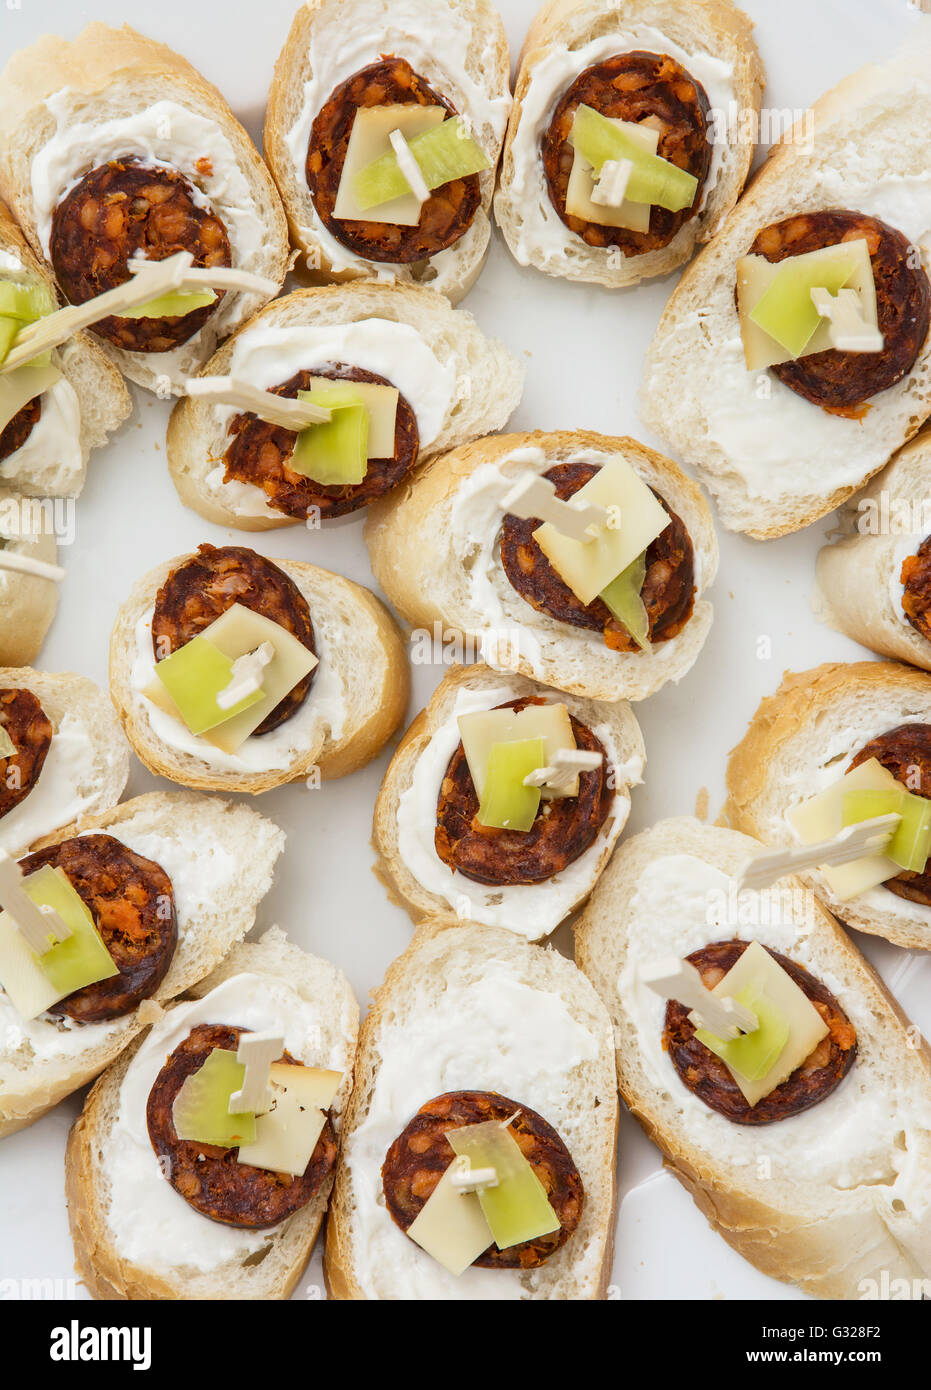 Tasty canapes with butter, sausage, cheese and paprika. Food theme. Catering theme. Refreshments for guests. Sticks - Stock Image